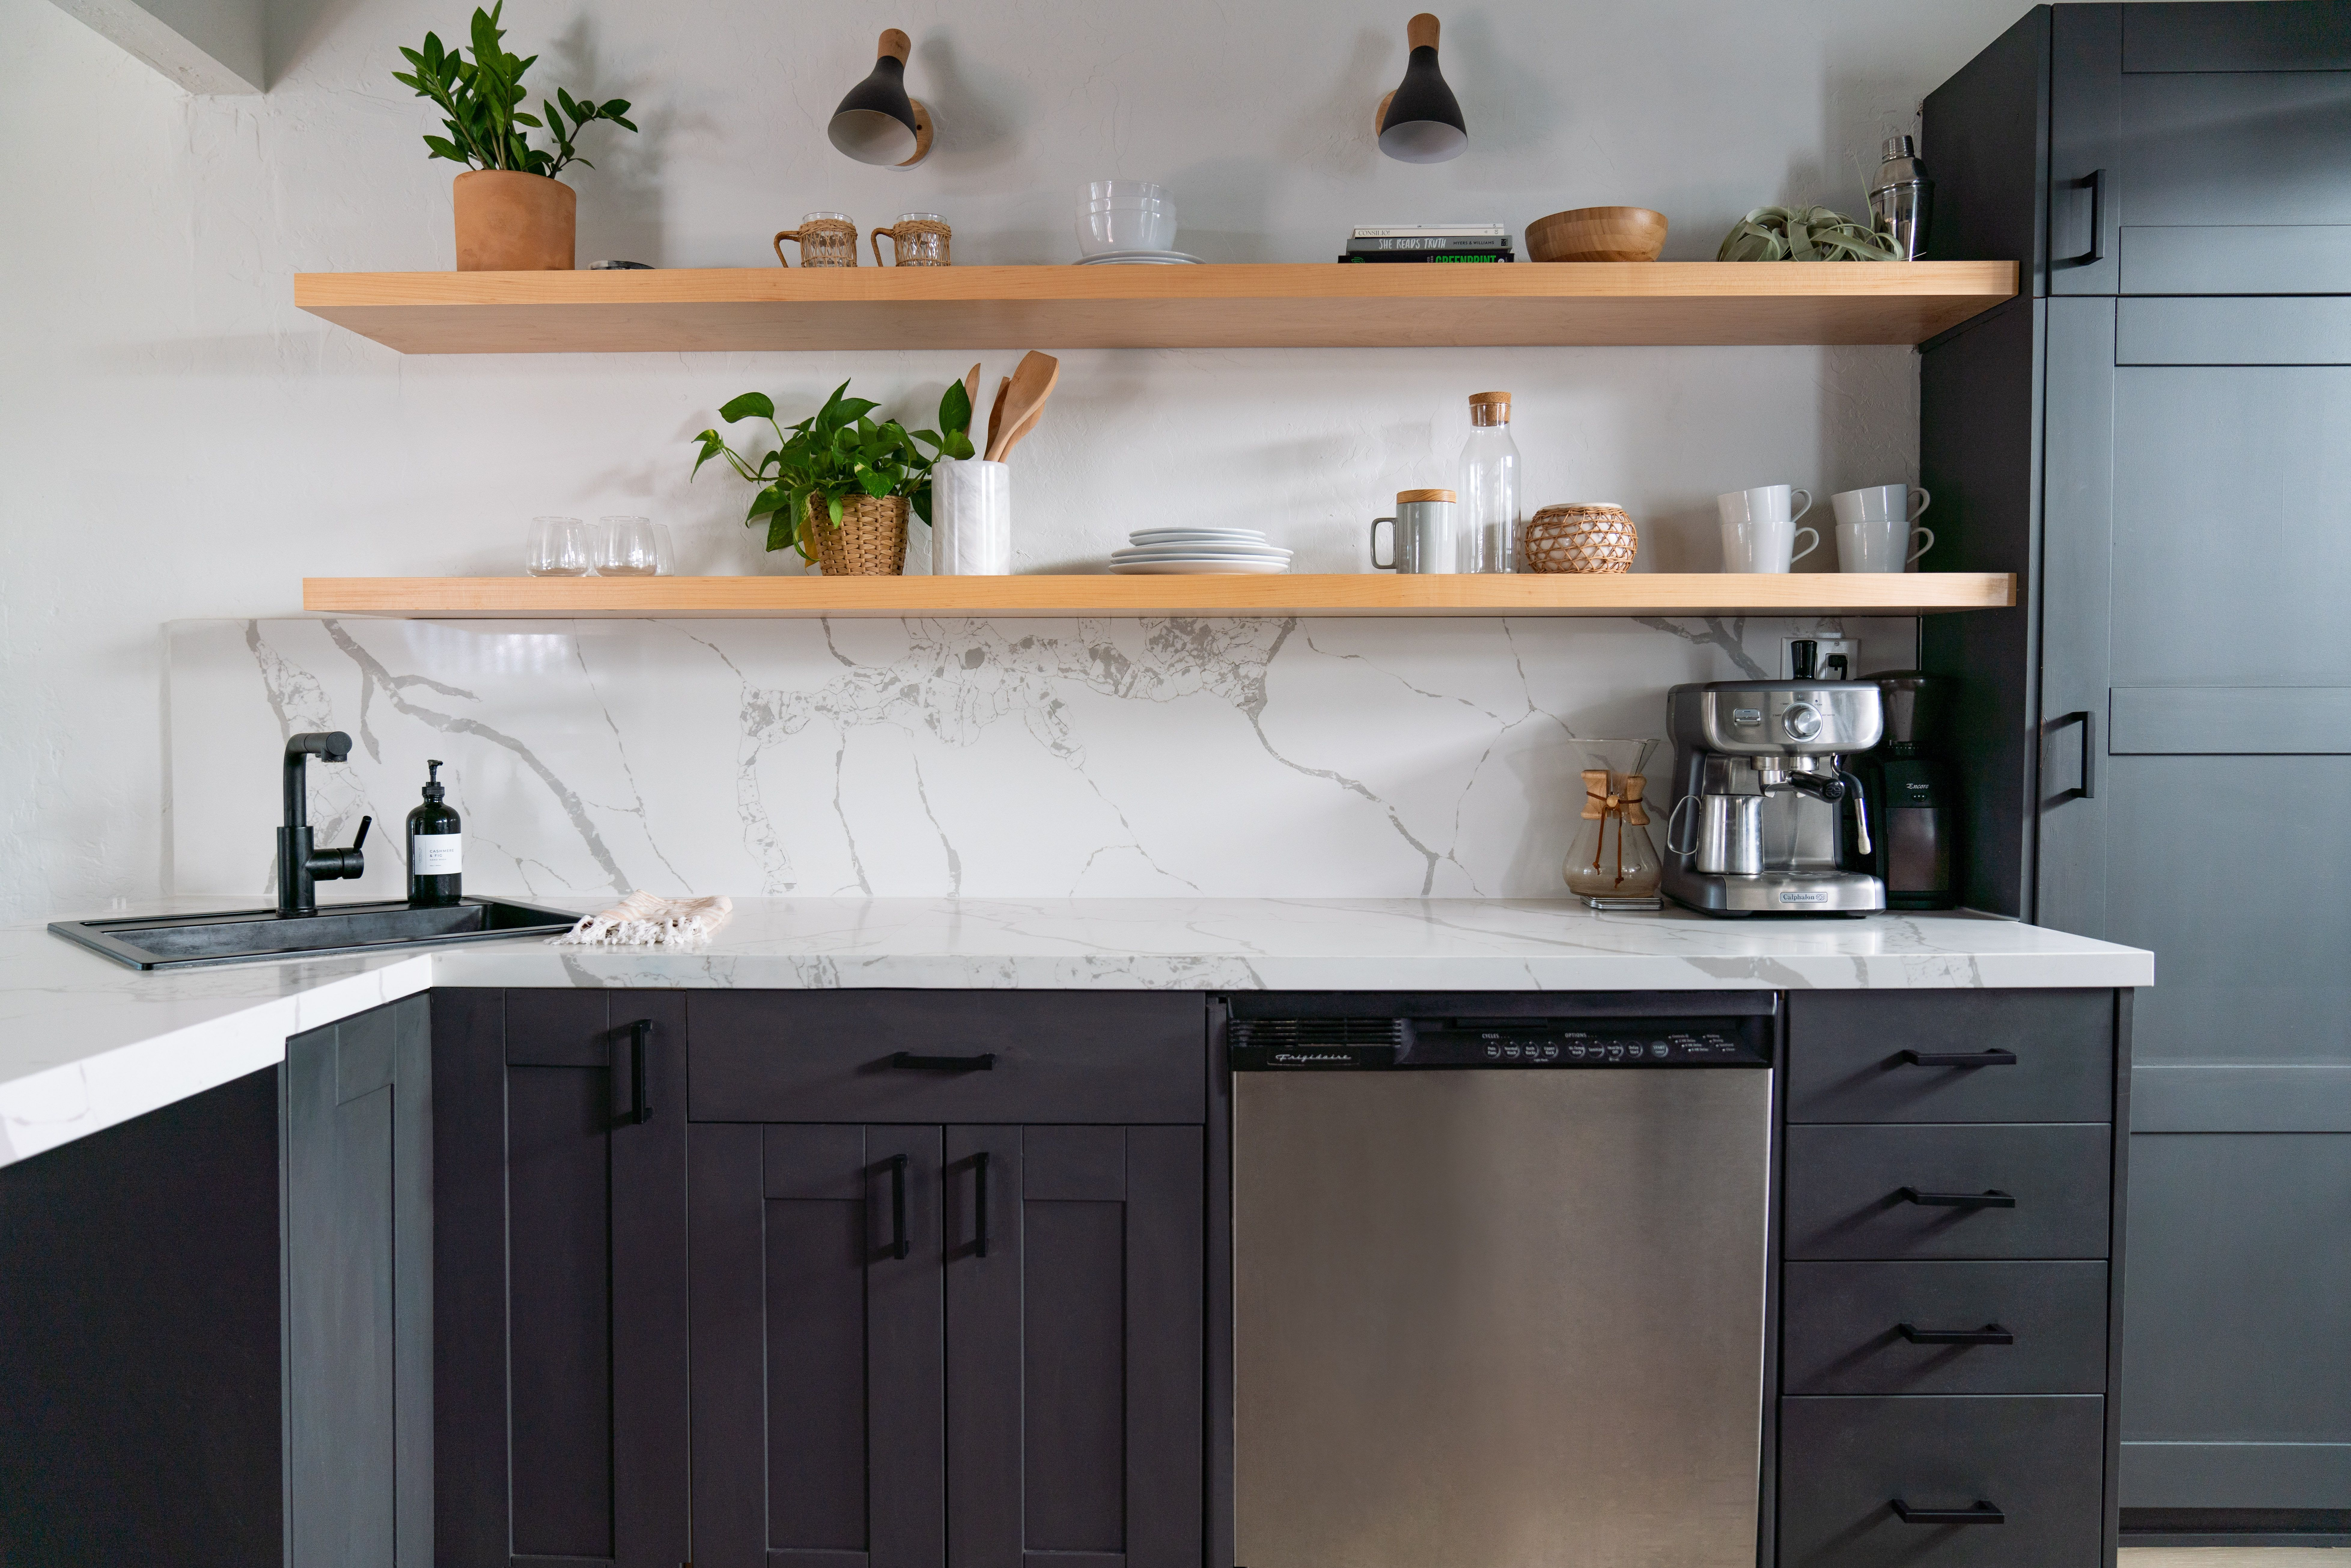 The Best Types Of Paint For Kitchen Cabinets